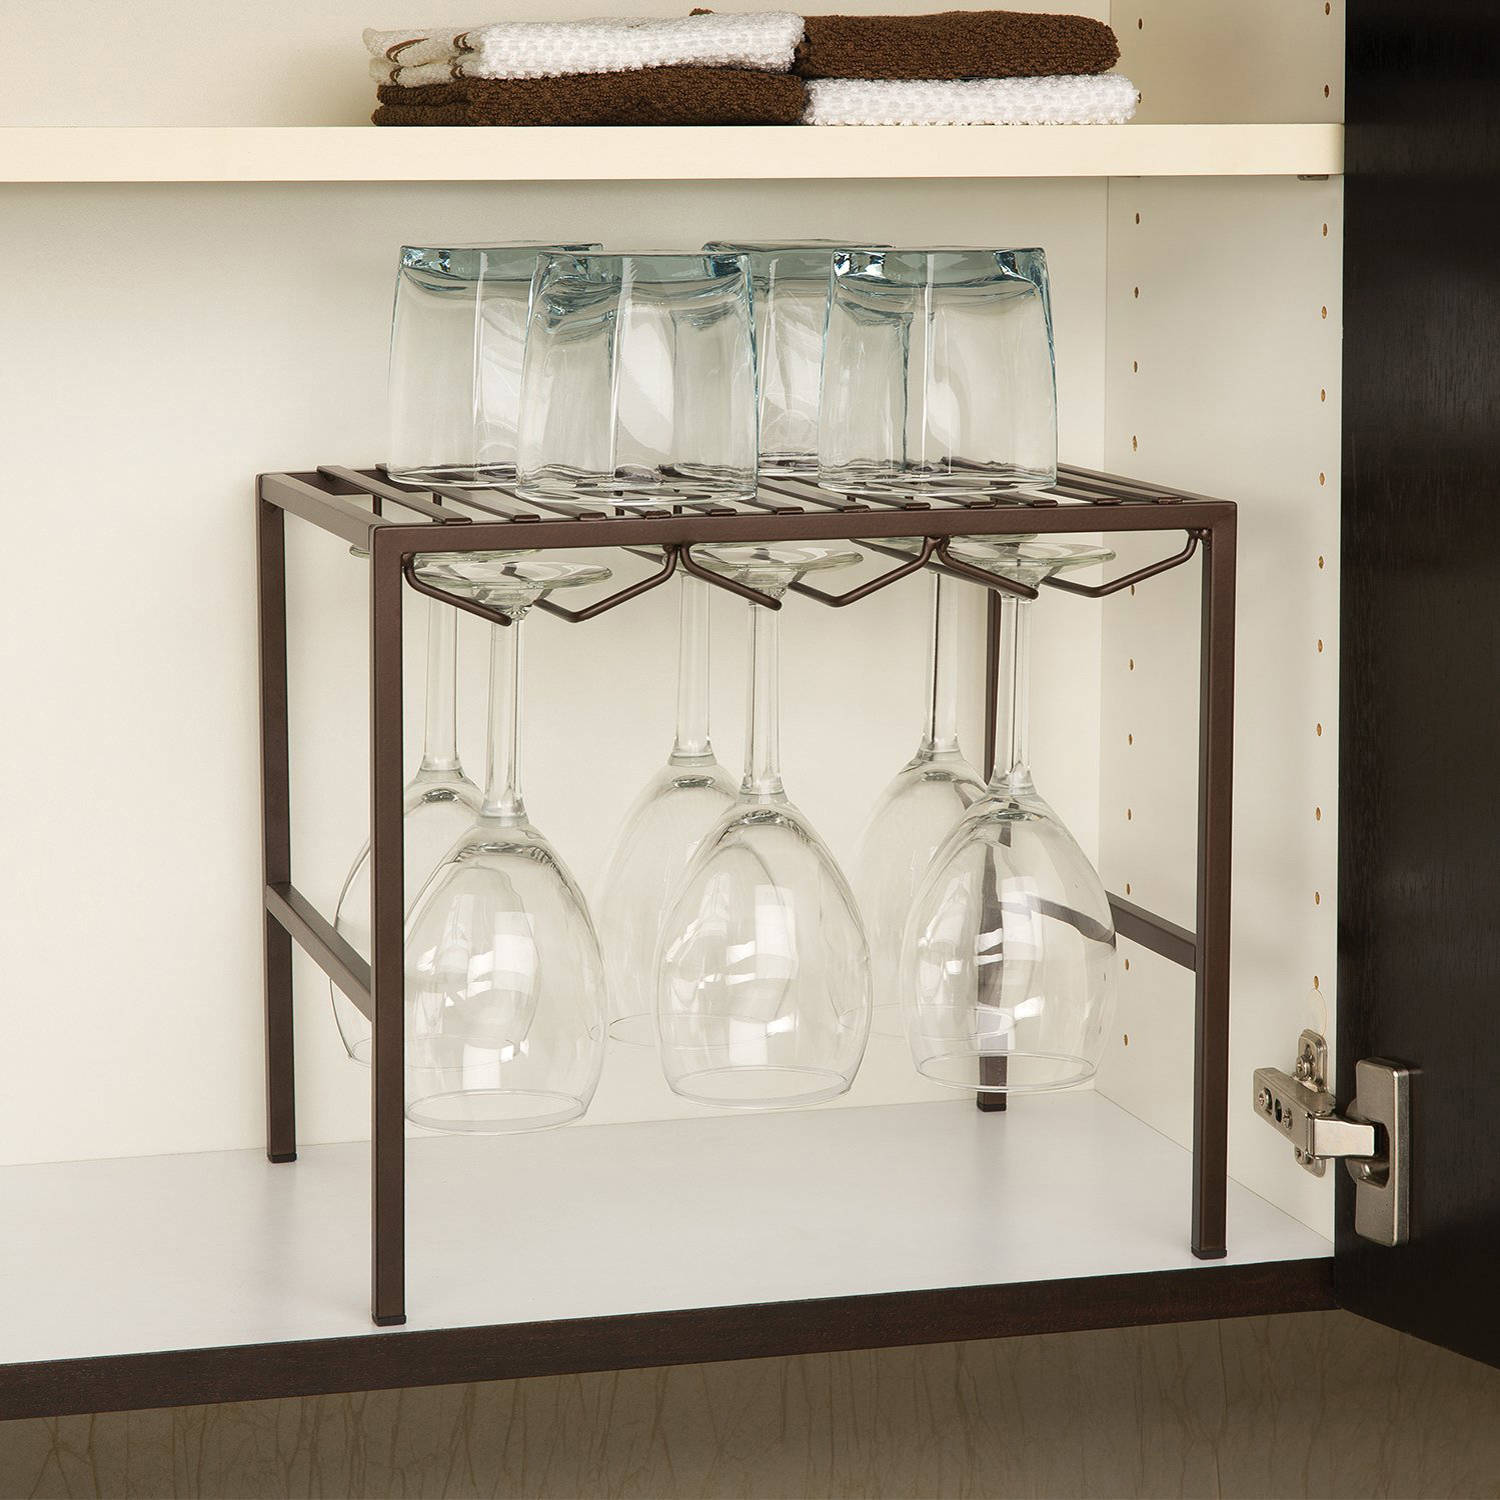 Seville Classics Stemware Holder and Shelf